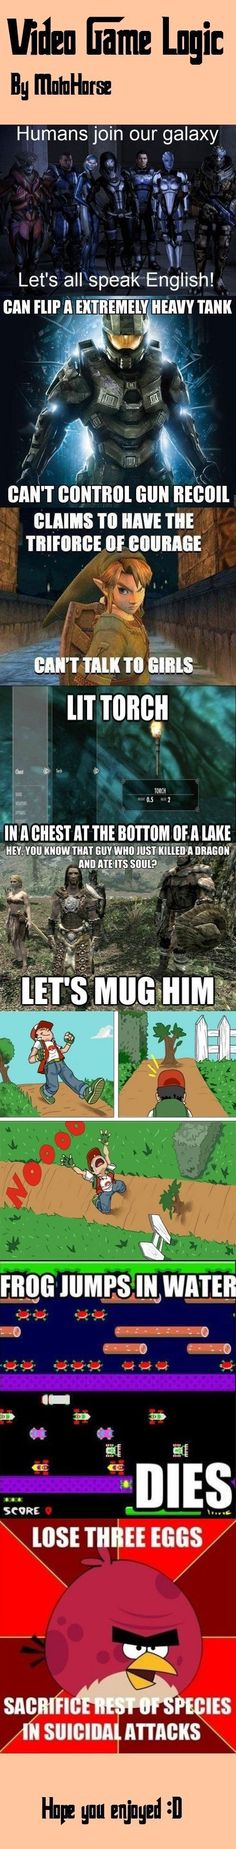 Video game logic... the pokemon one cracks me up